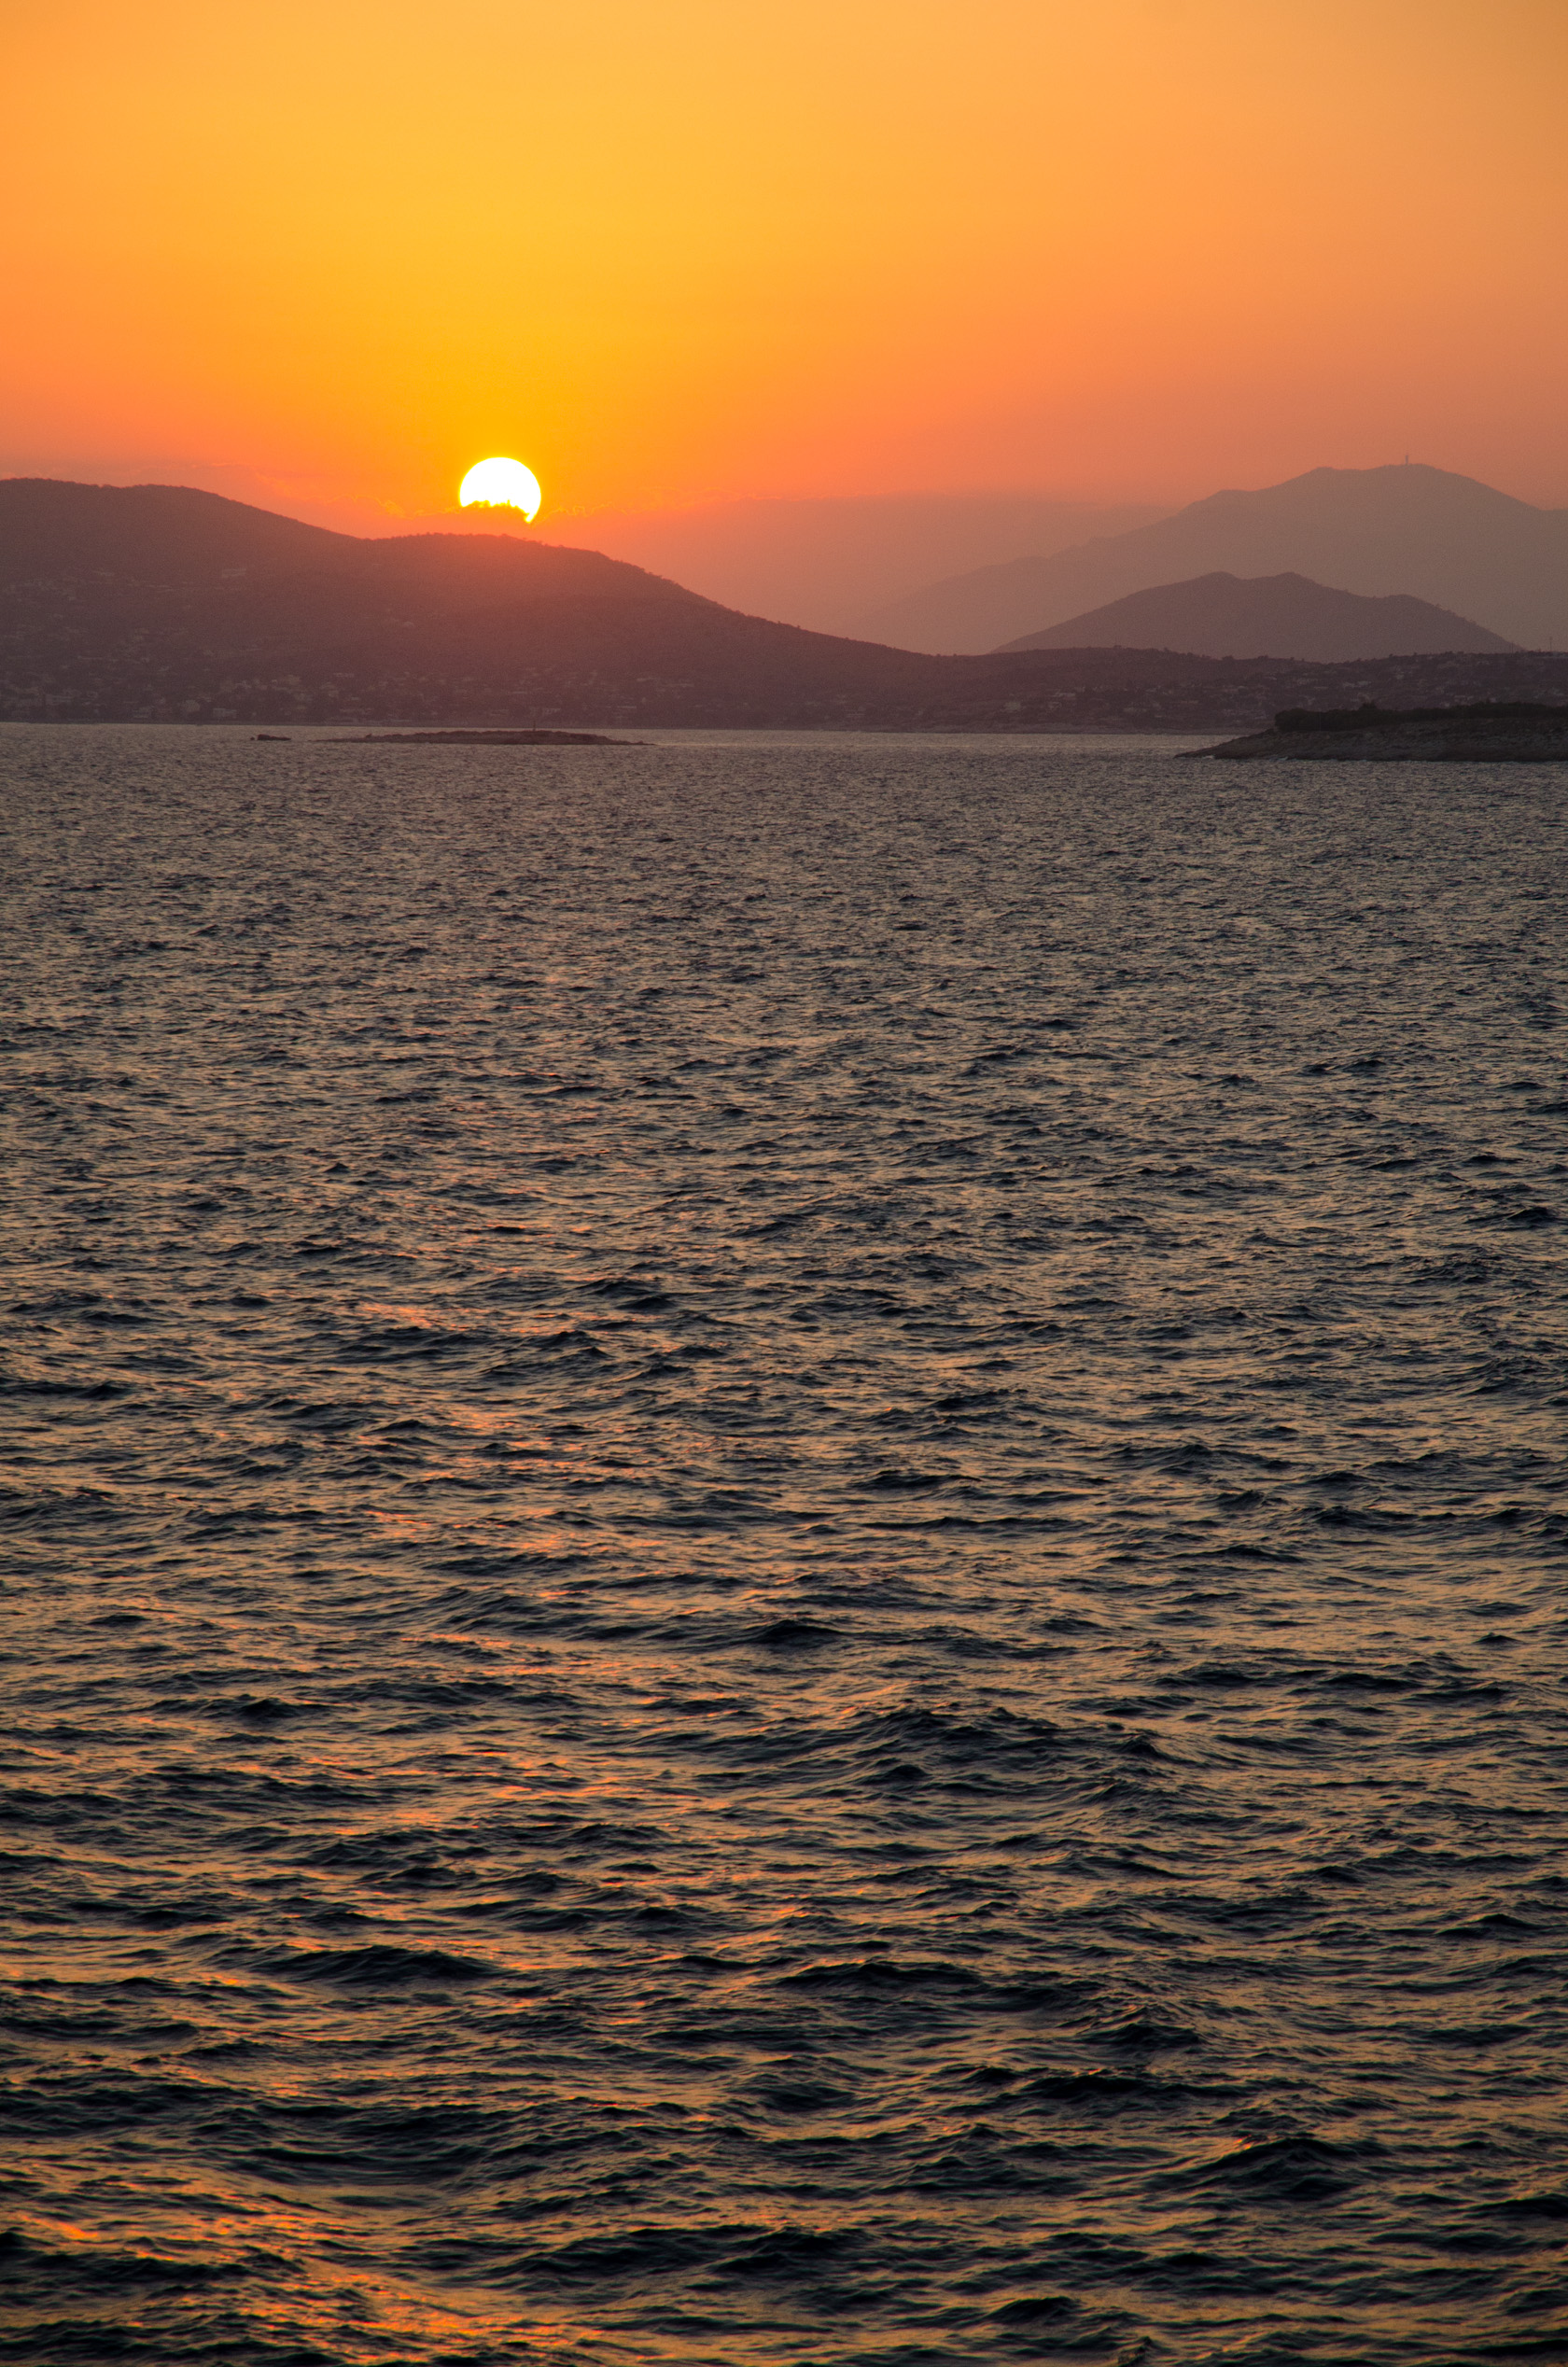 Sunset over Peloponnese